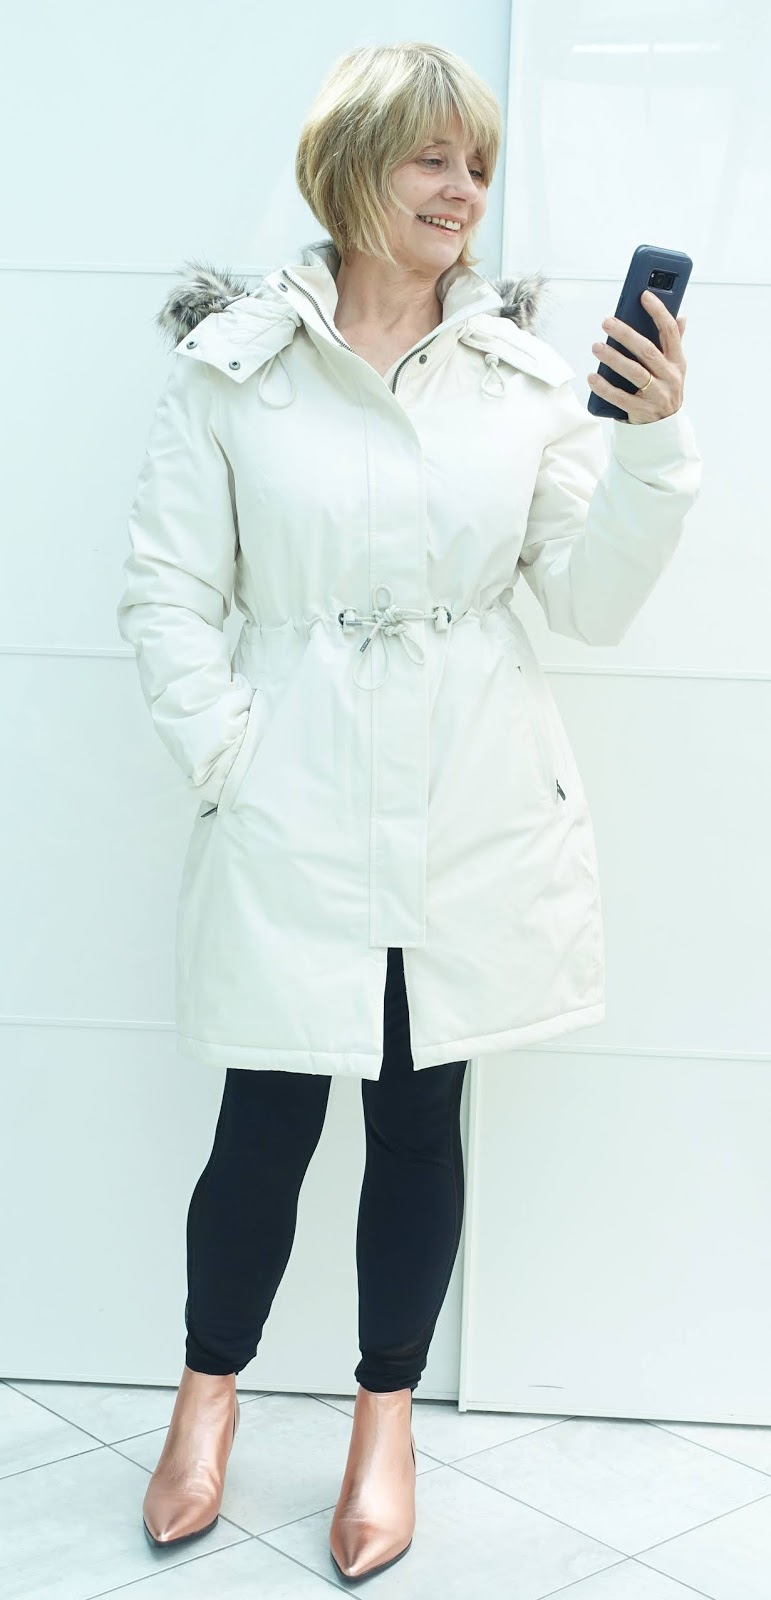 This Zaneck parka from The North Face is stylish and full of detail and technical features to repel rain and cold